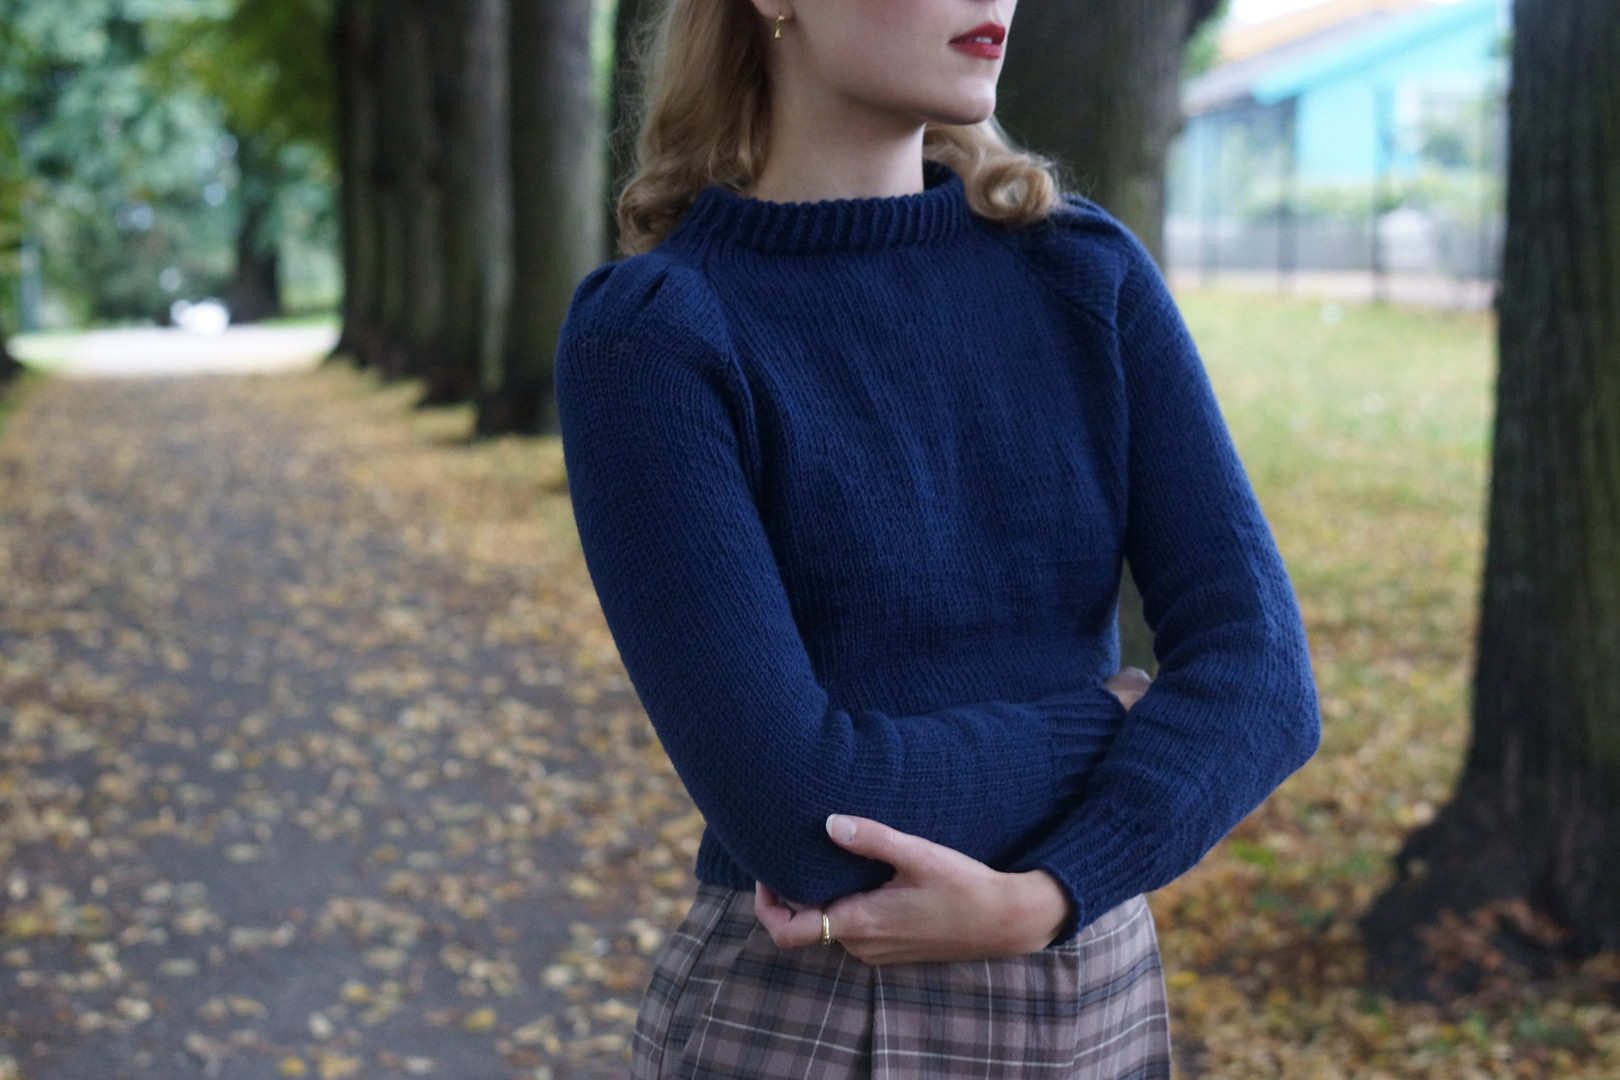 Diagon Alley Jumper knit in Pickles Soft